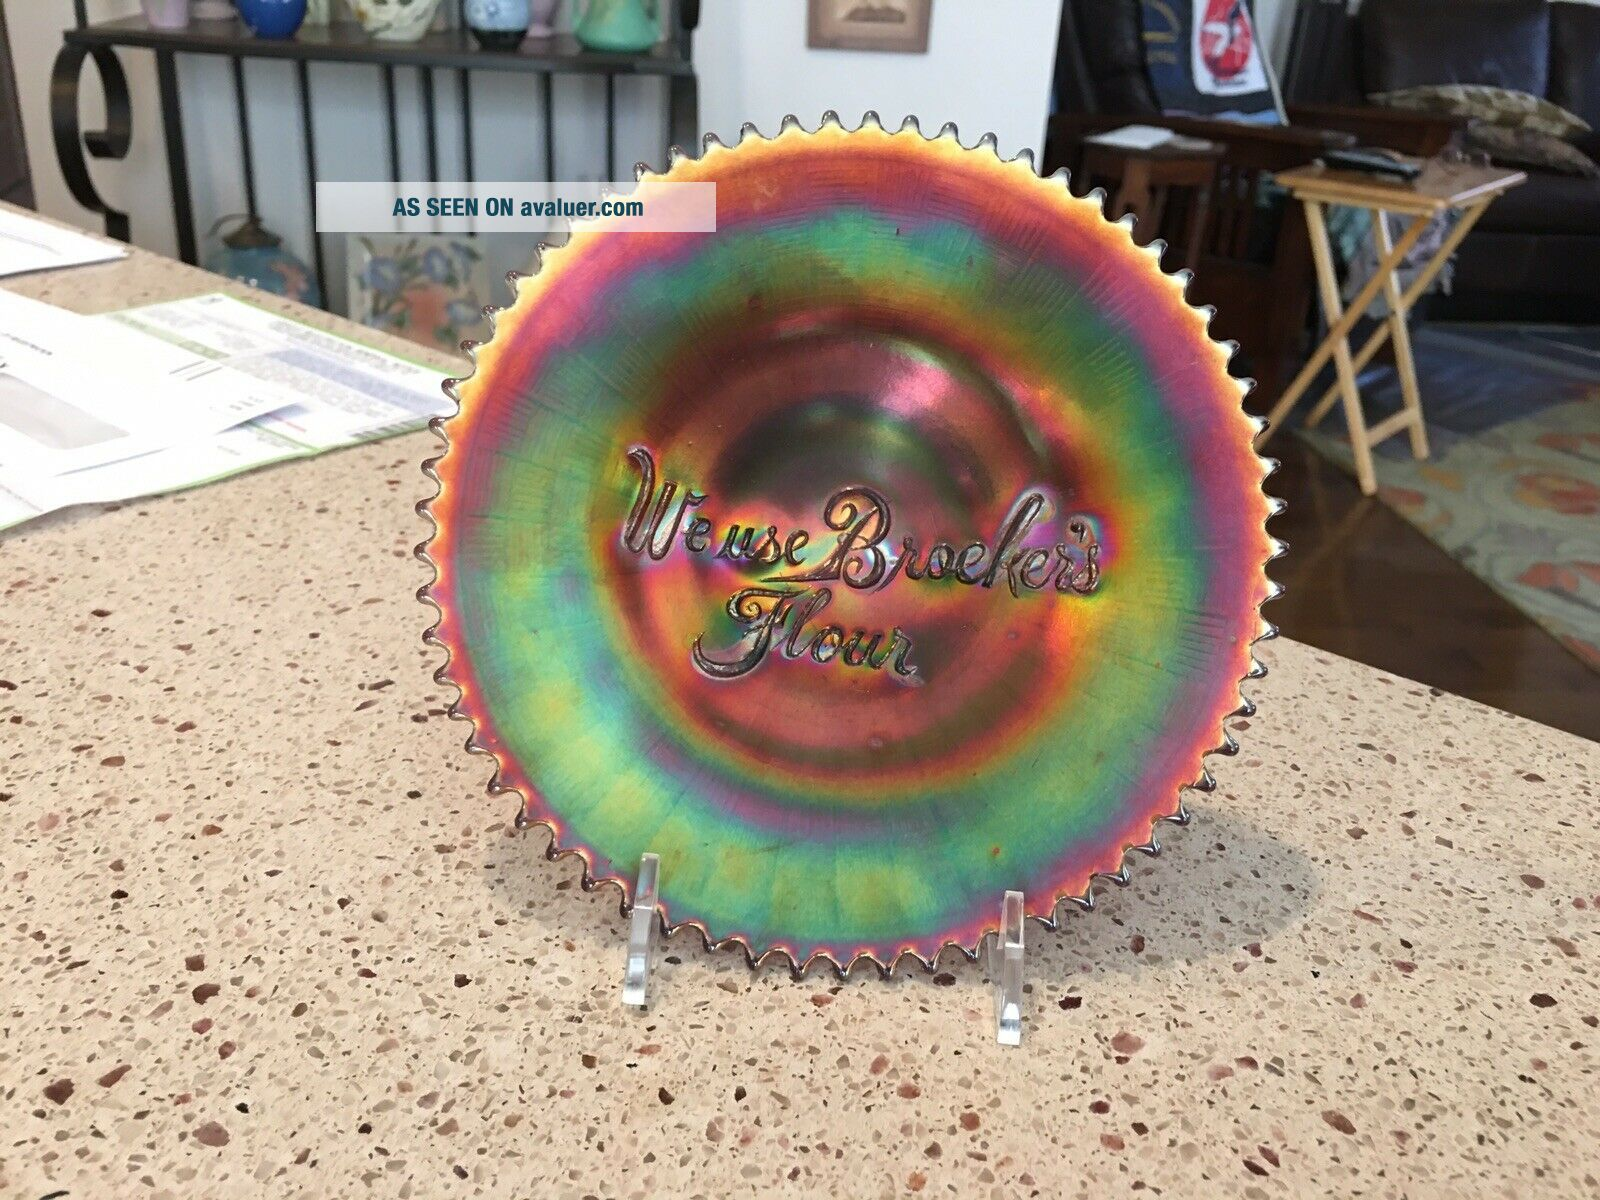 Very Rare Northwood Carnival Glass Advertising Plate - We Use Broeker's Flour